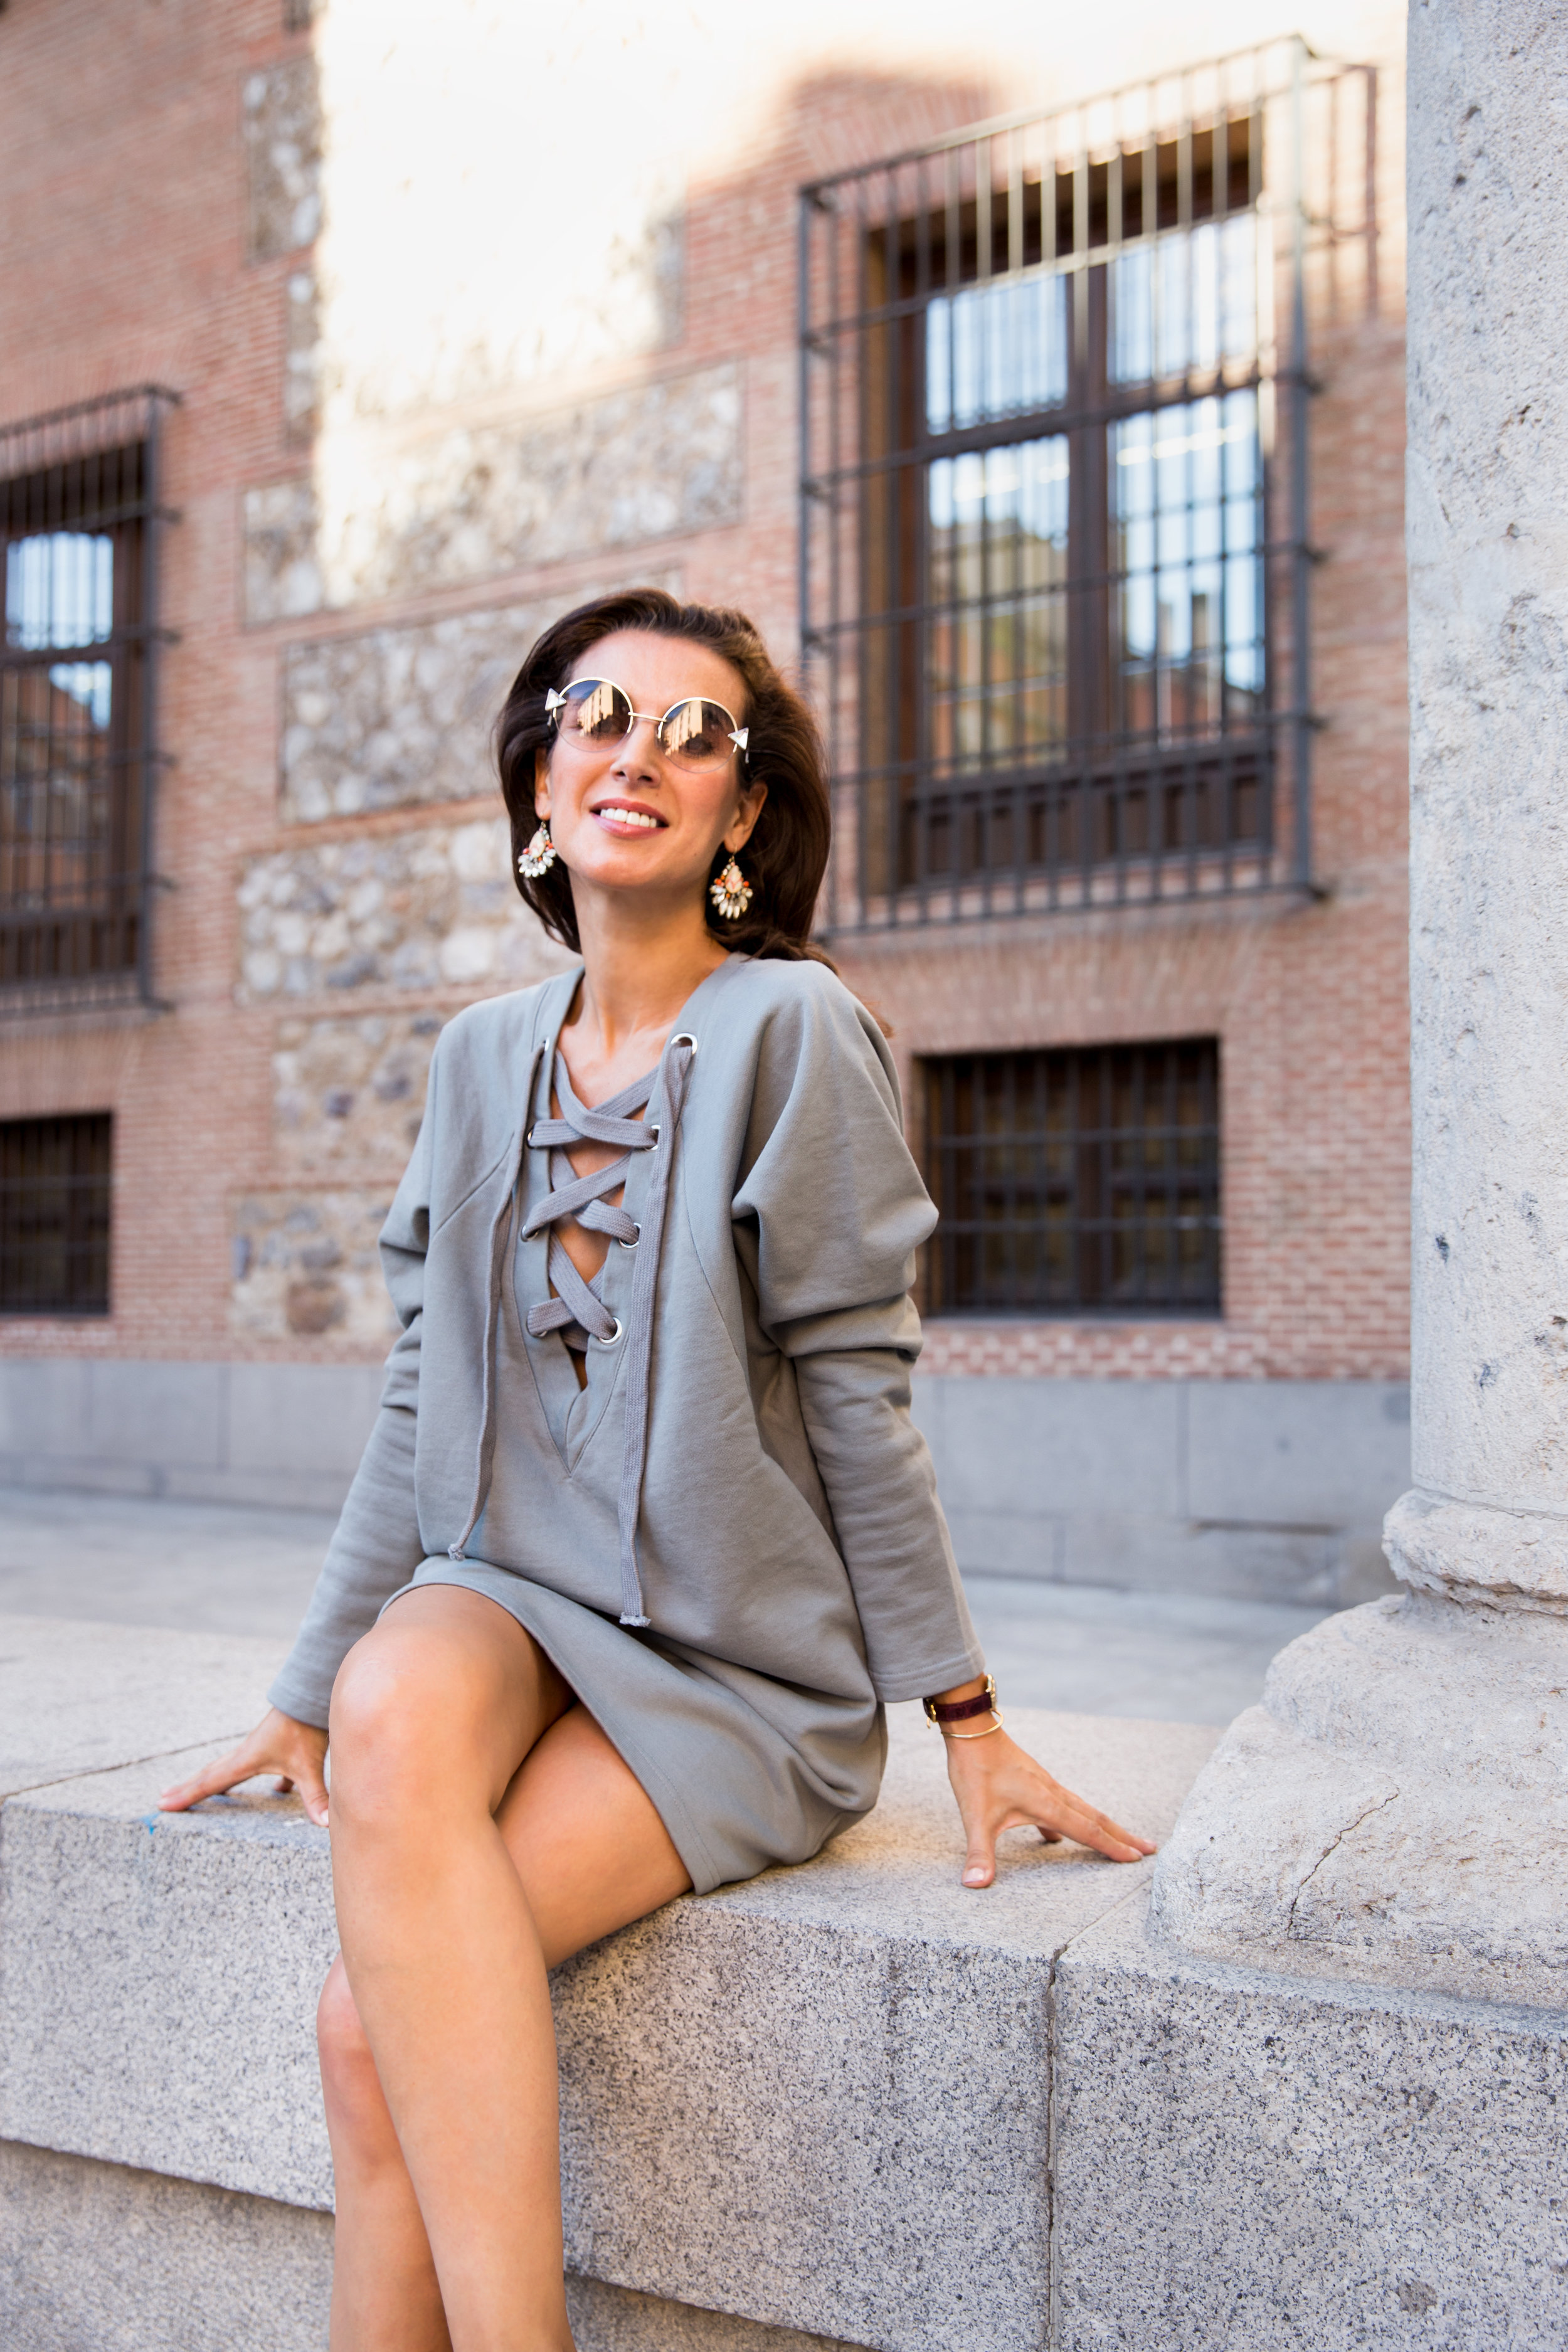 FEELING COZY AND CHIC - OCTOBER 31, 2017Hello Madrid! Since last March I dint´t come here and it feels so good to enjoy the city and catch up with favorite friends!... - read more